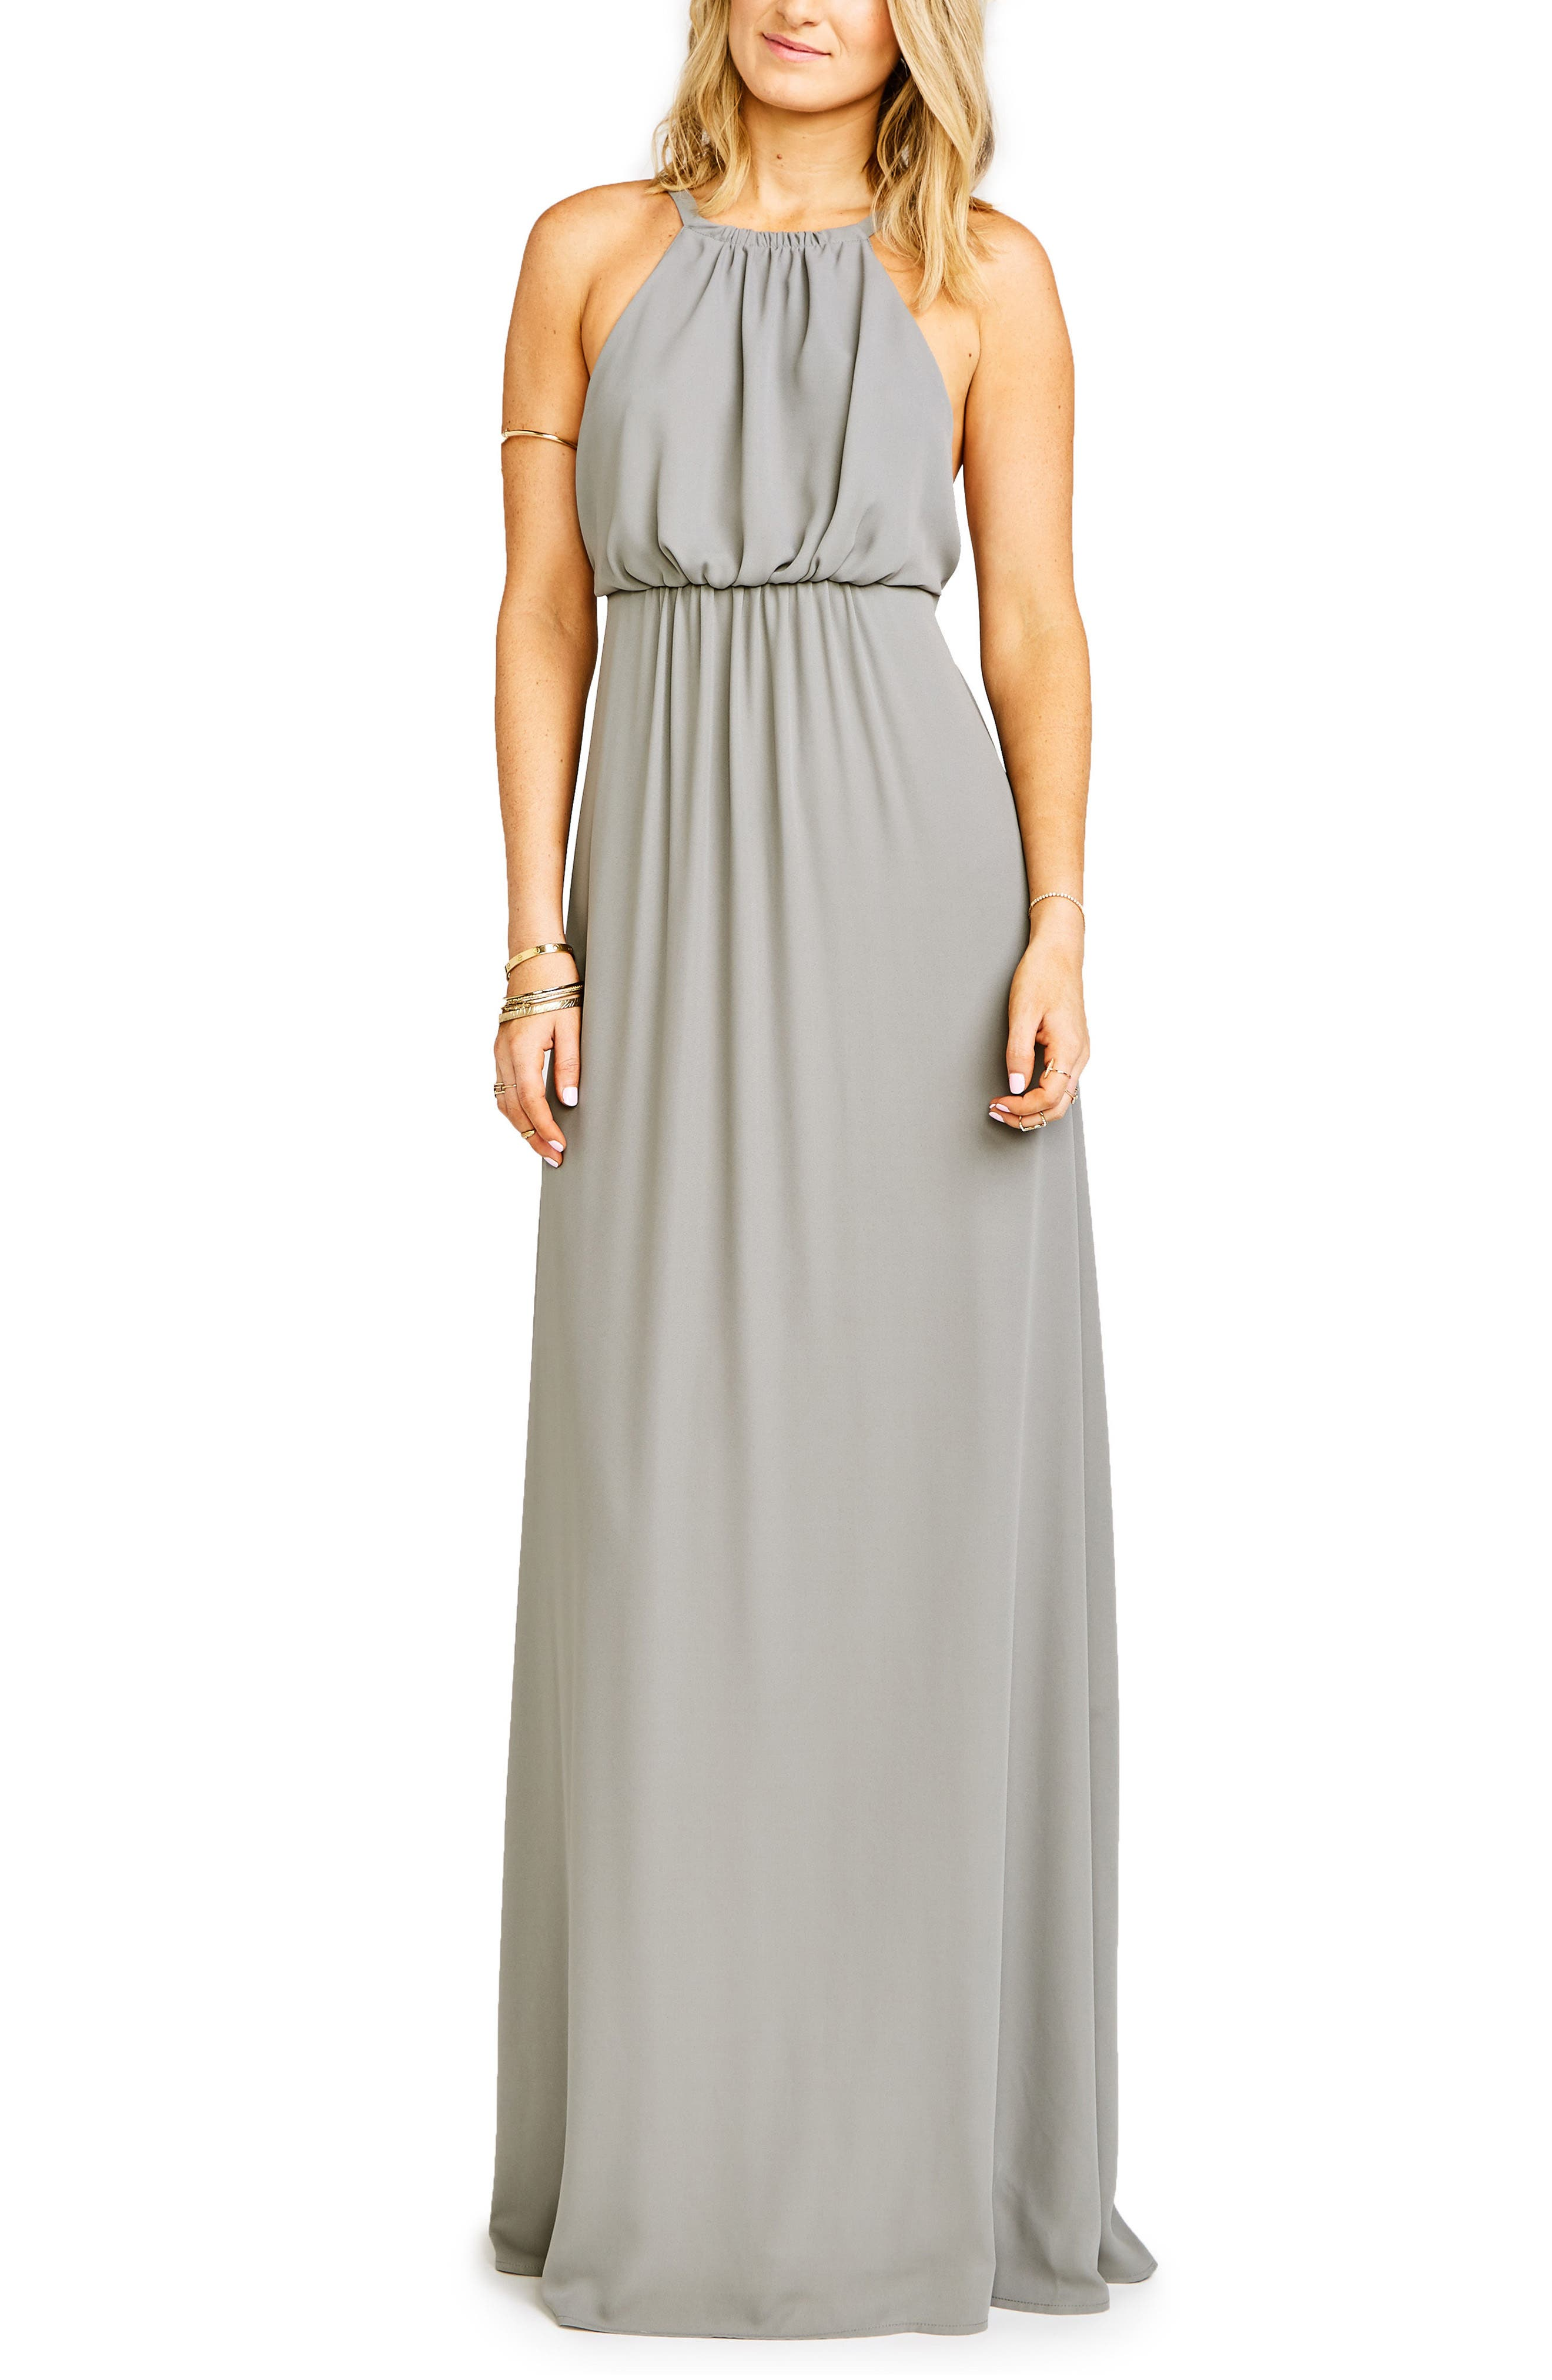 Amanda Open Back Blouson Gown,                             Alternate thumbnail 8, color,